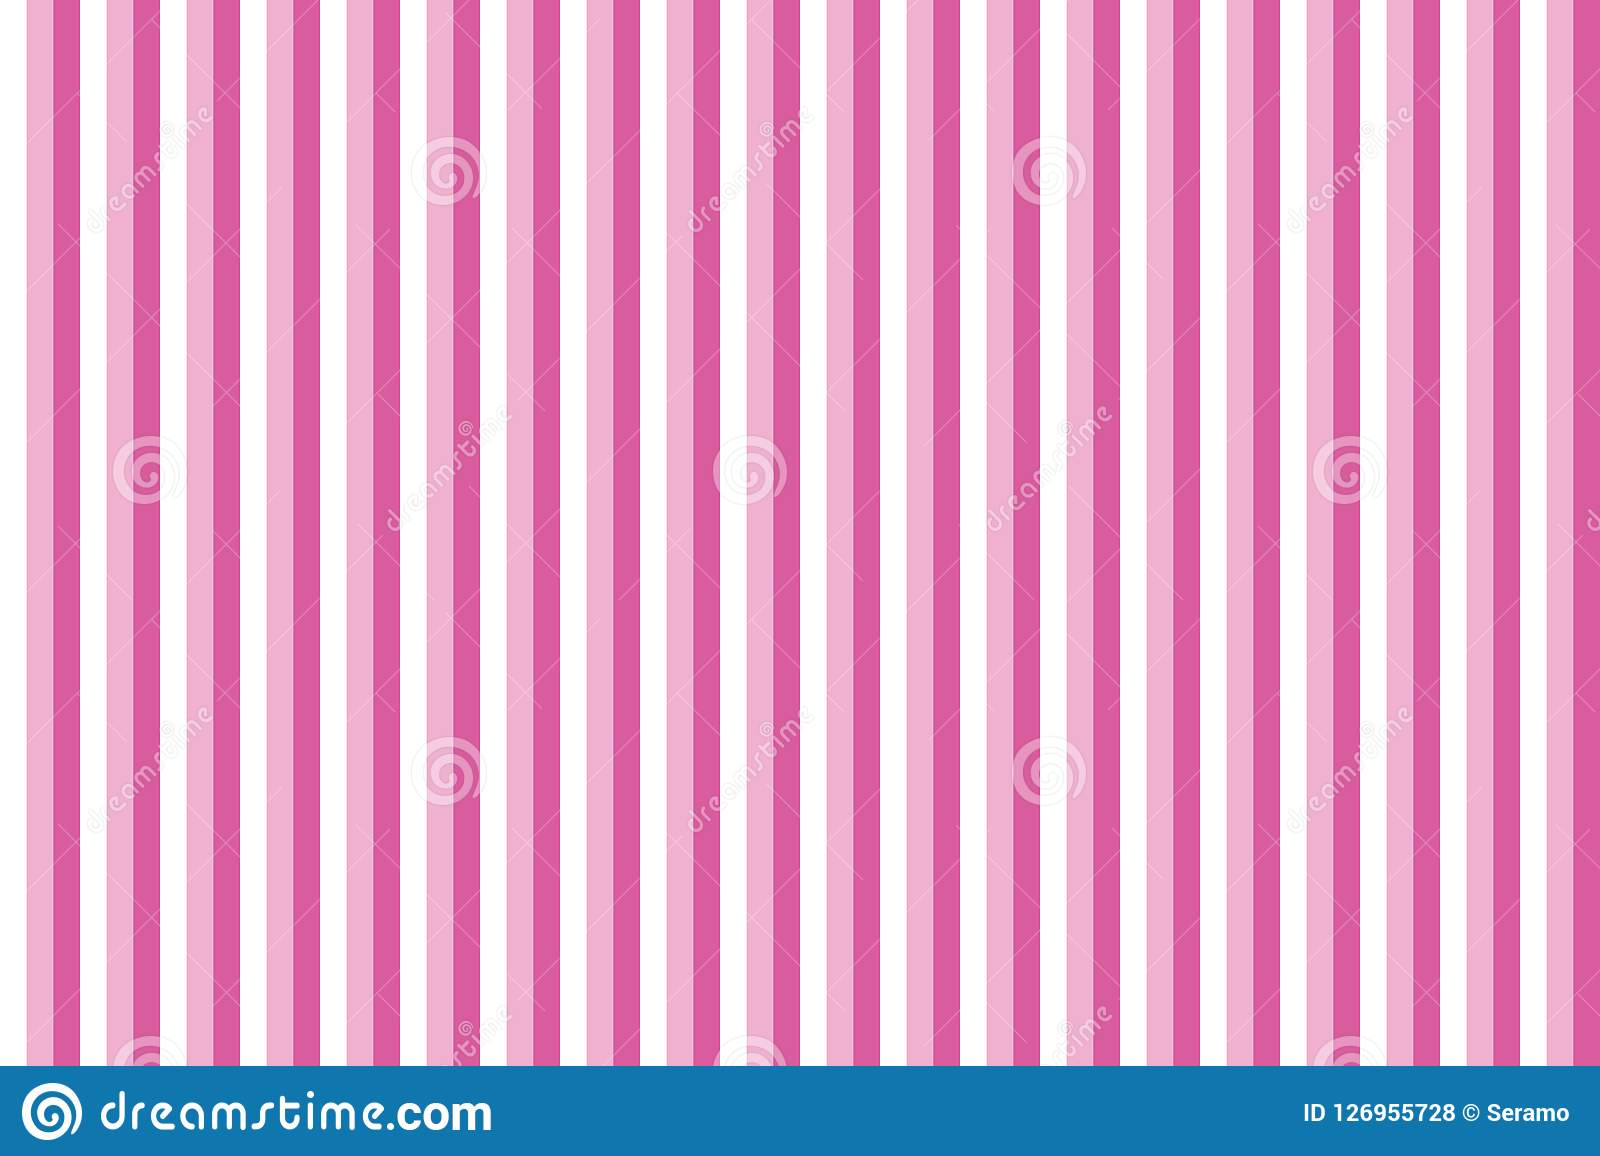 Striped Background Stock Vector Illustration Of Seamless 126955728